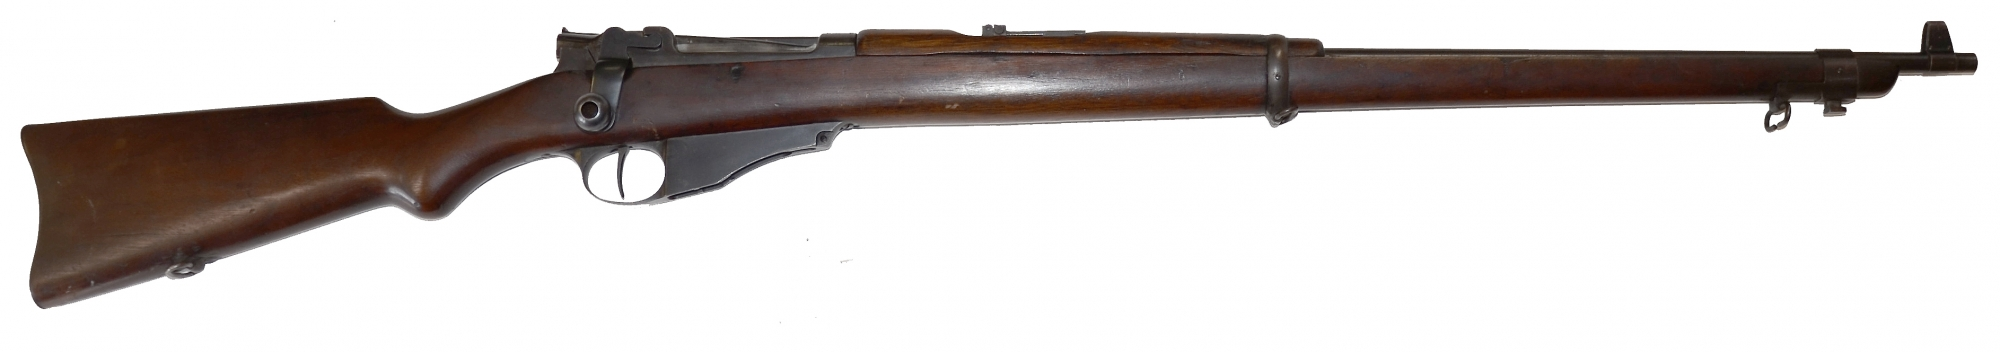 FINE U.S. NAVY WINCHESTER-LEE MODEL 1895 BOLT ACTION RIFLE-MUSKET, WITH FORT MIFFLIN TAG